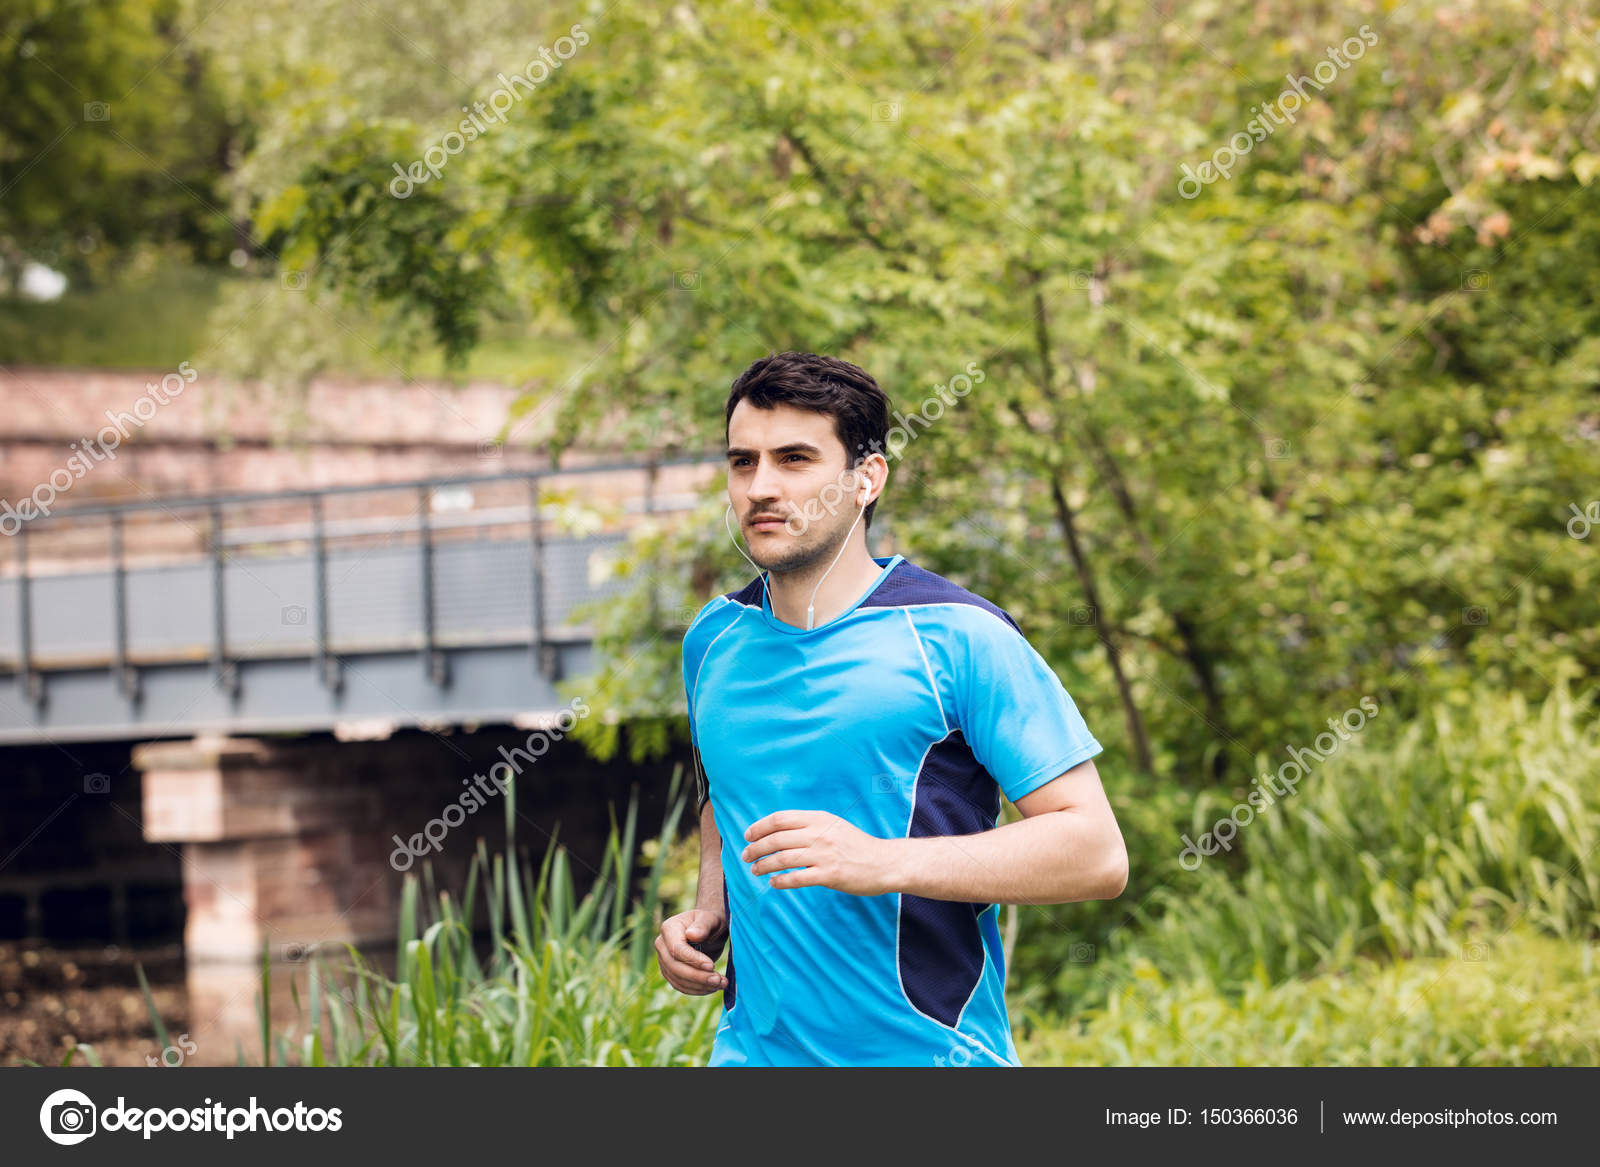 Running workout man with mp3 music player listening to music — Stock